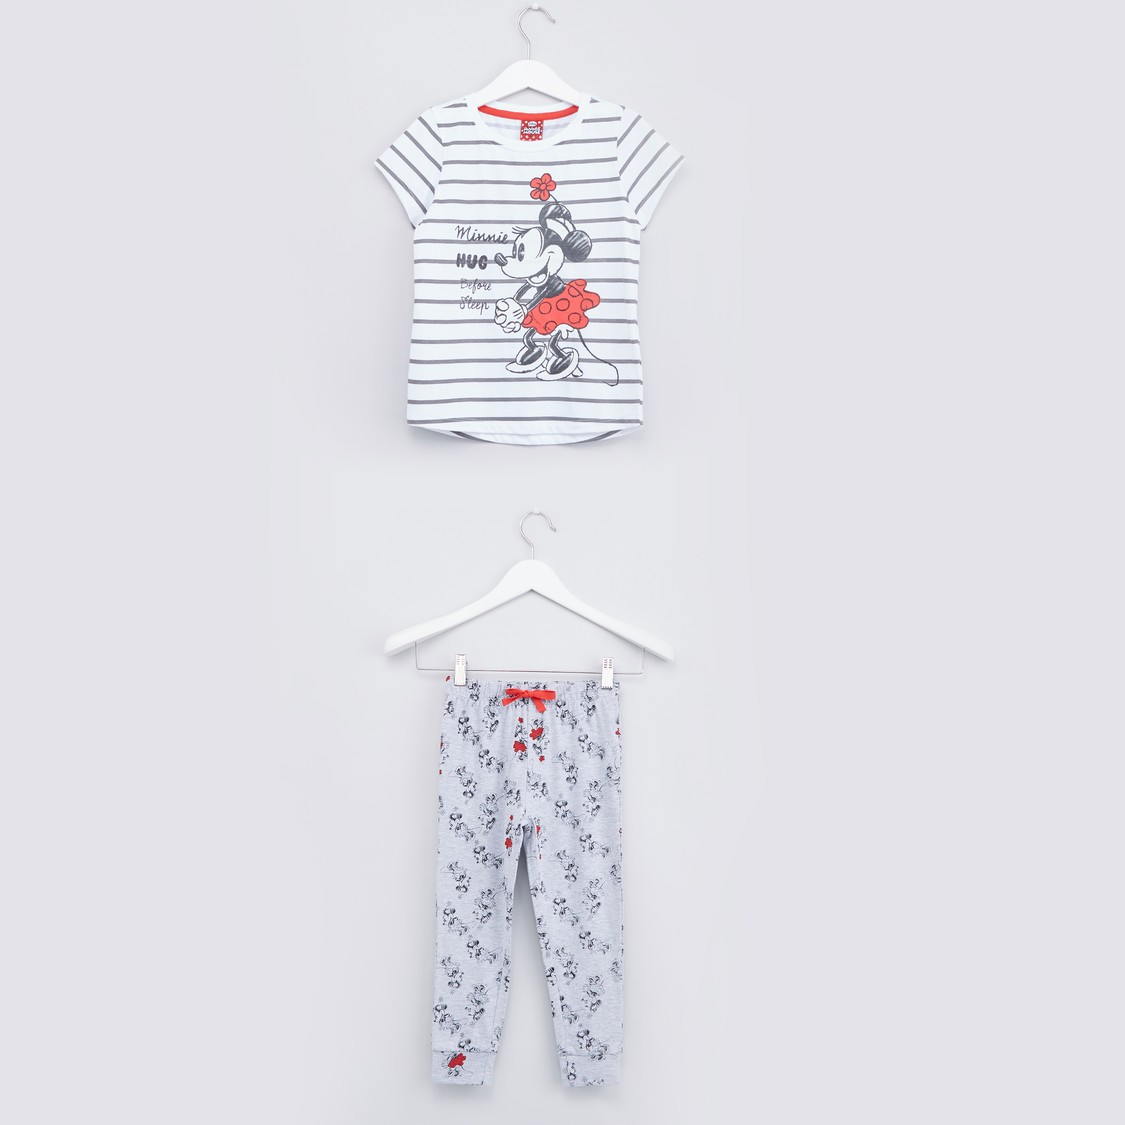 Minnie Mouse Printed T-shirt with Jog Pants